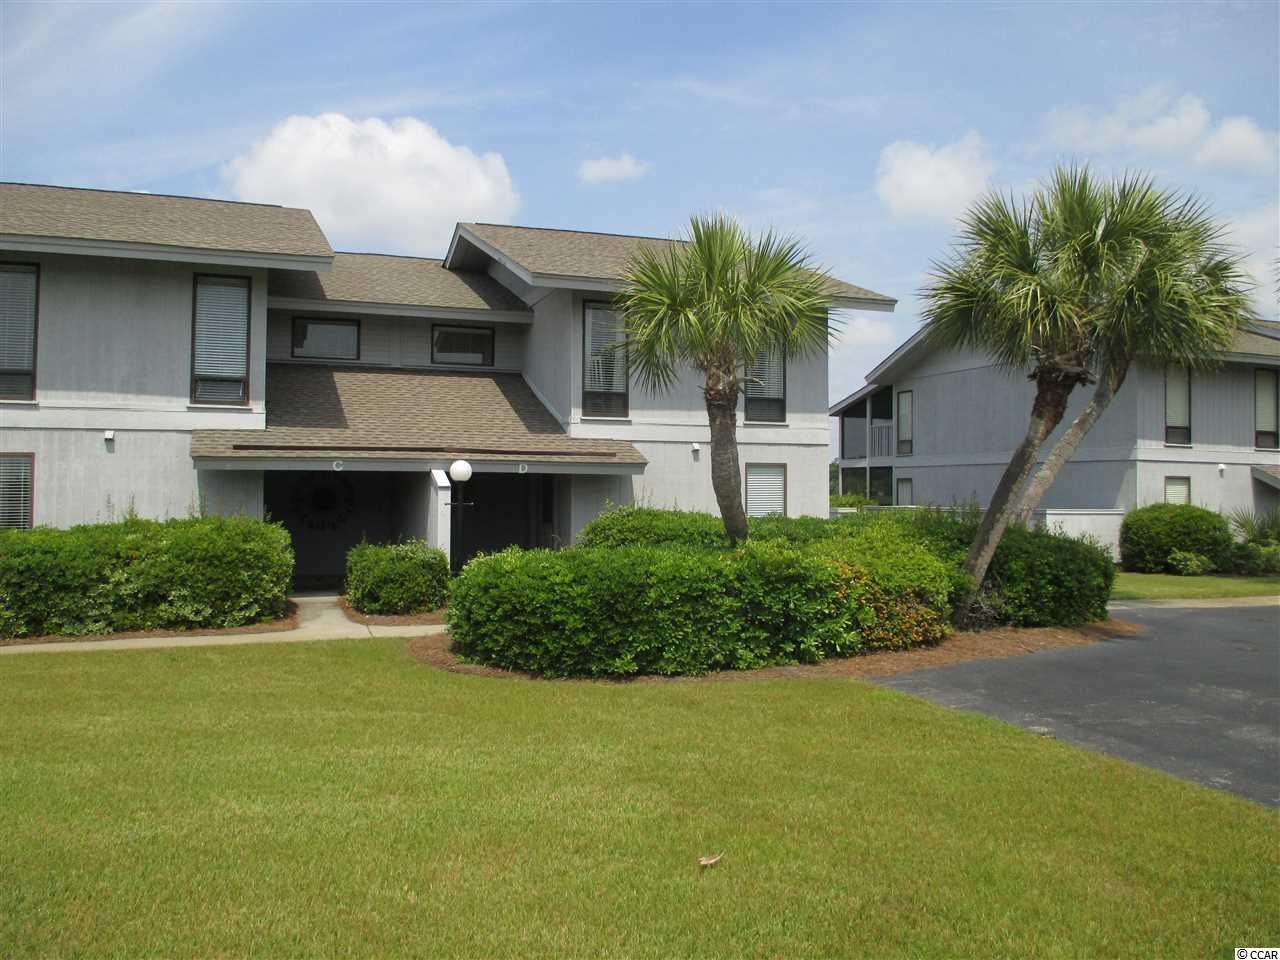 This beautiful 3 bedroom condo is located on the marsh/inlet within the gates of Inlet Point at South Litchfield Beach. The villa features ground level entry for easy access. First floor features living space with an open floor plan including newly remodeled kitchen, large dining and spacious living area....plus a full laundry room, screened porch, patio and 1/2 bath. Three spacious bedrooms and 2 baths are located upstairs with two featuring private decks/porches overlooking the the salt water marsh. Enjoy beautiful marsh and sunset views while only being a short walk to one of the best beaches in South Carolina. Additionally Inlet point features two pools, club house, playground, and dock on the creek.  All info and dimensions should be verified by Buyer.